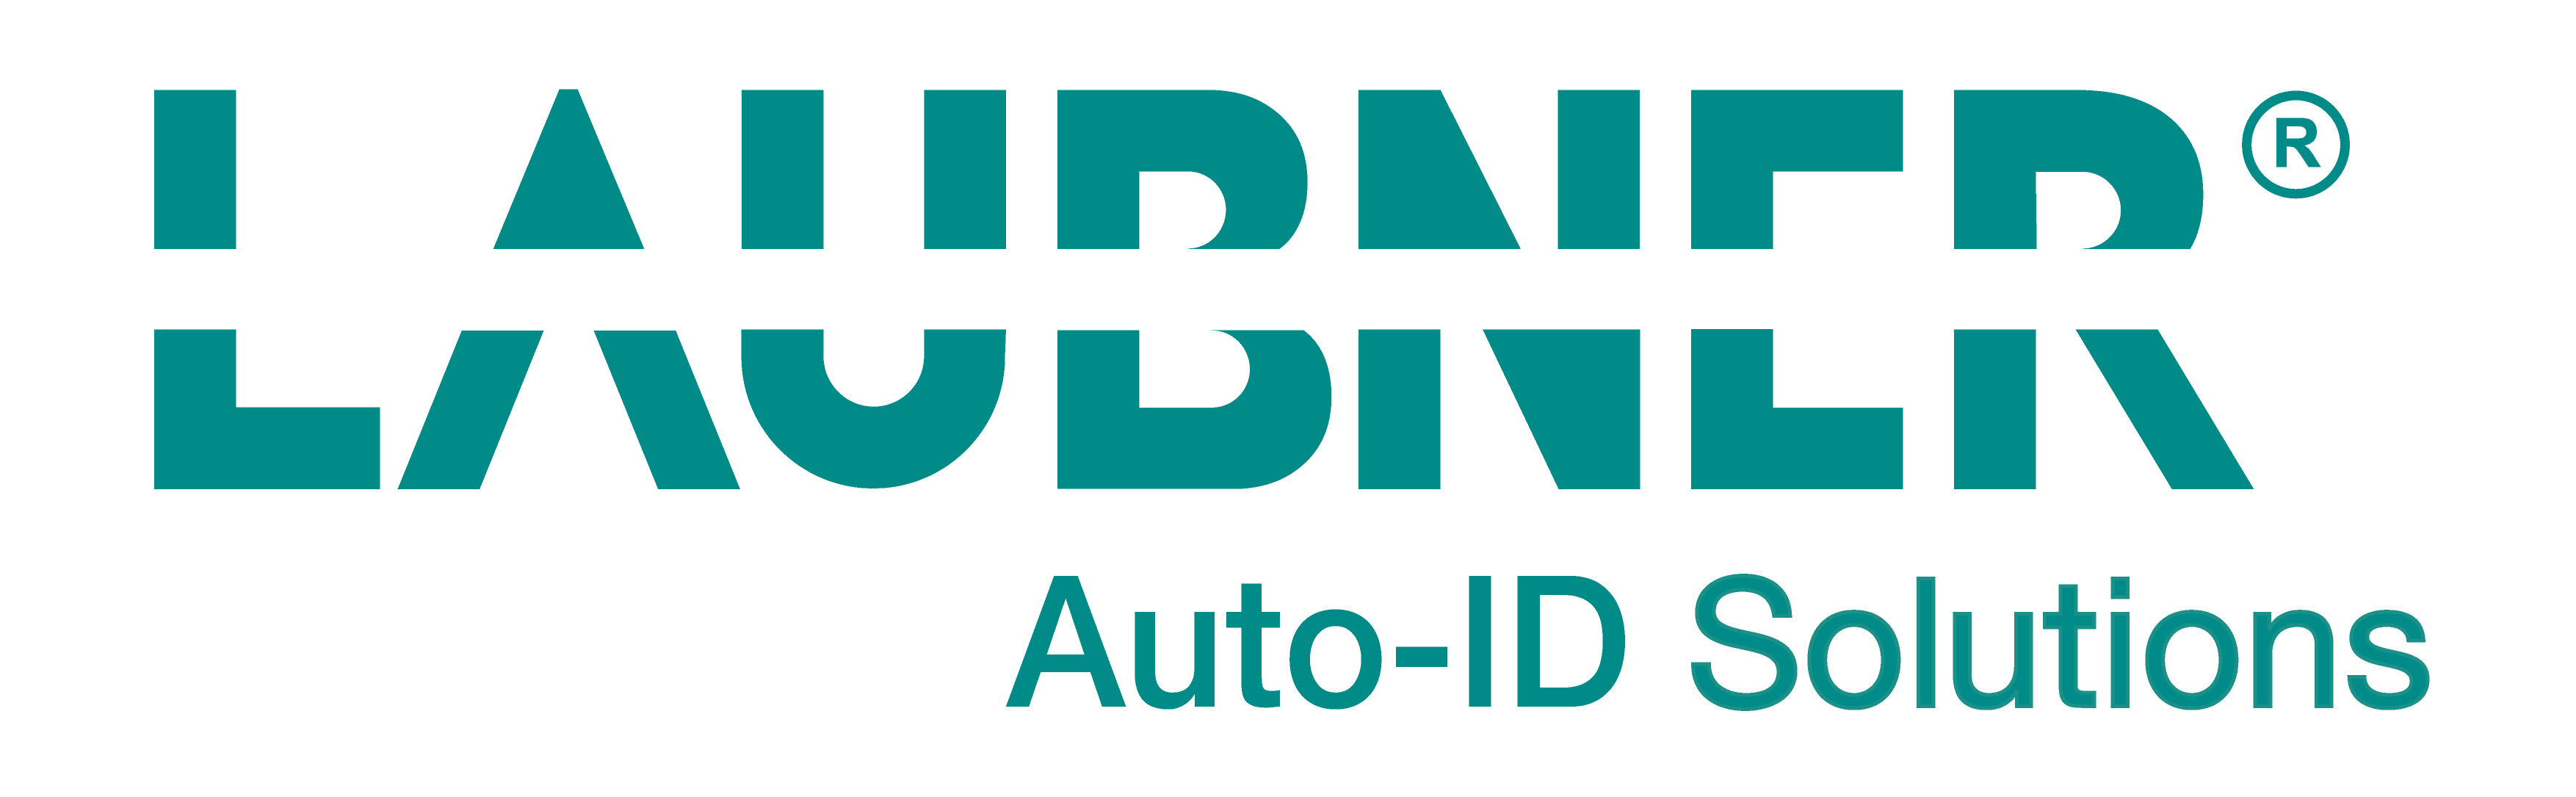 Laubner Auto-ID Solutions